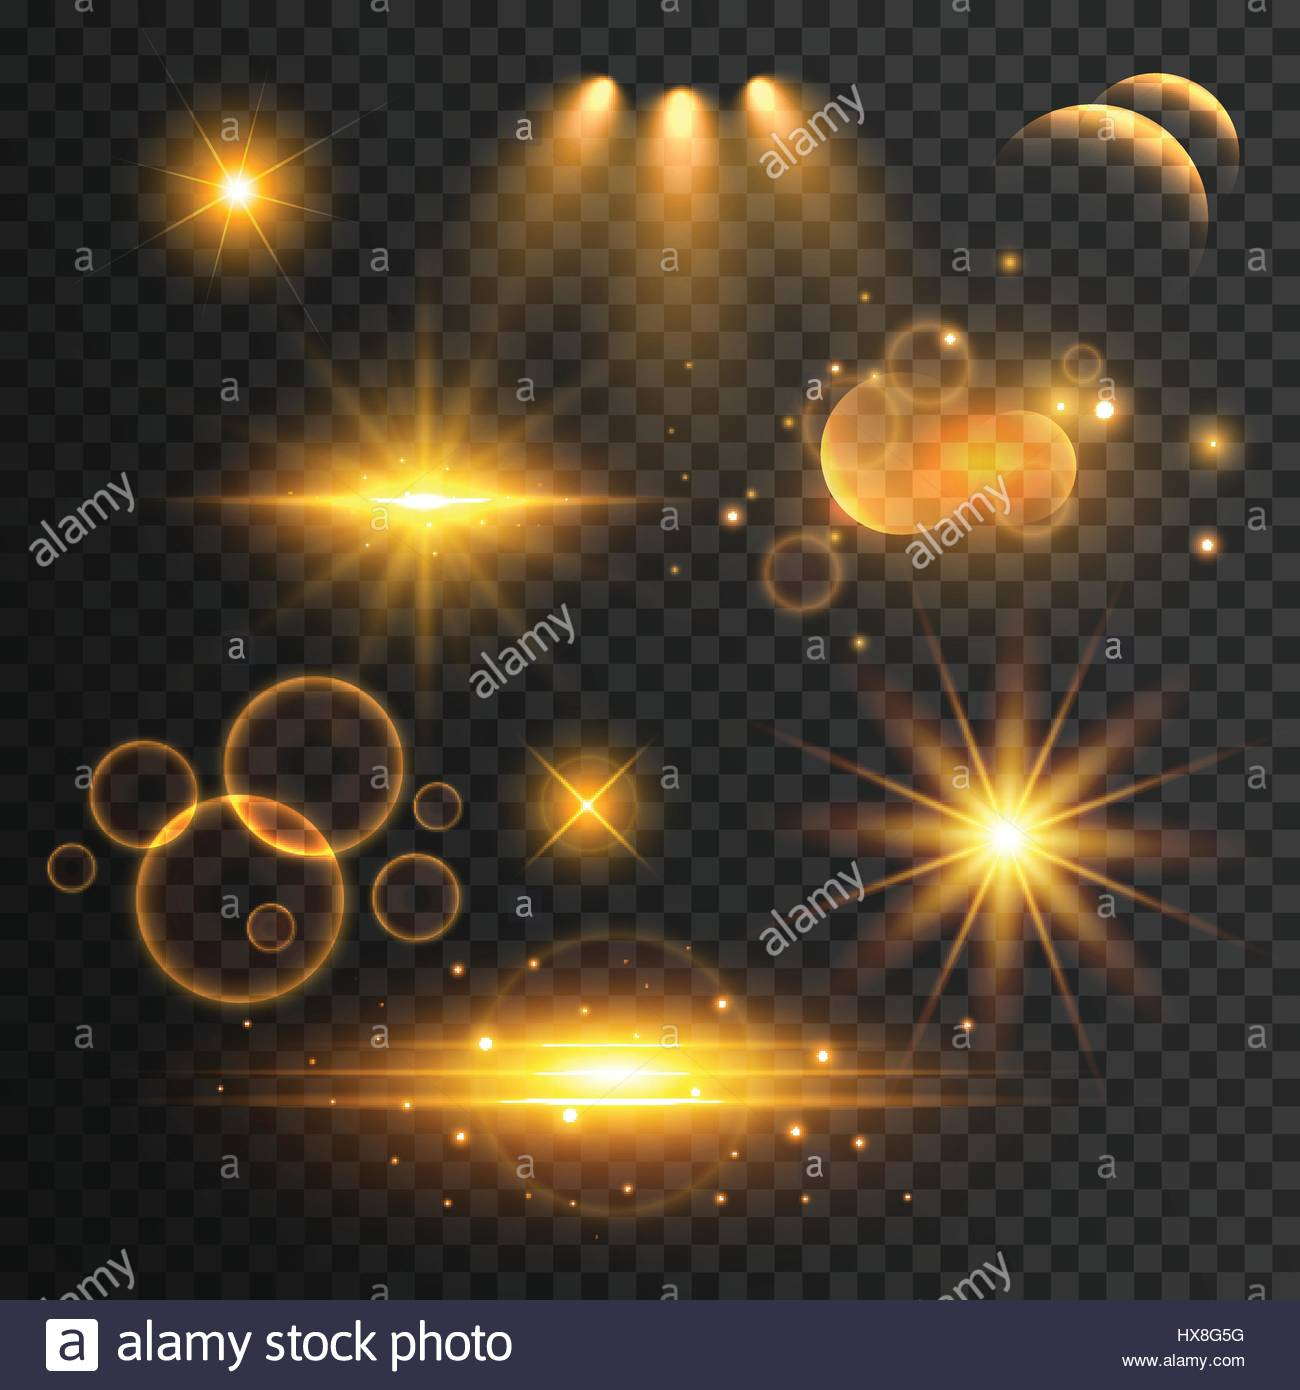 set of transparent lens flare and light effects Stock Vector